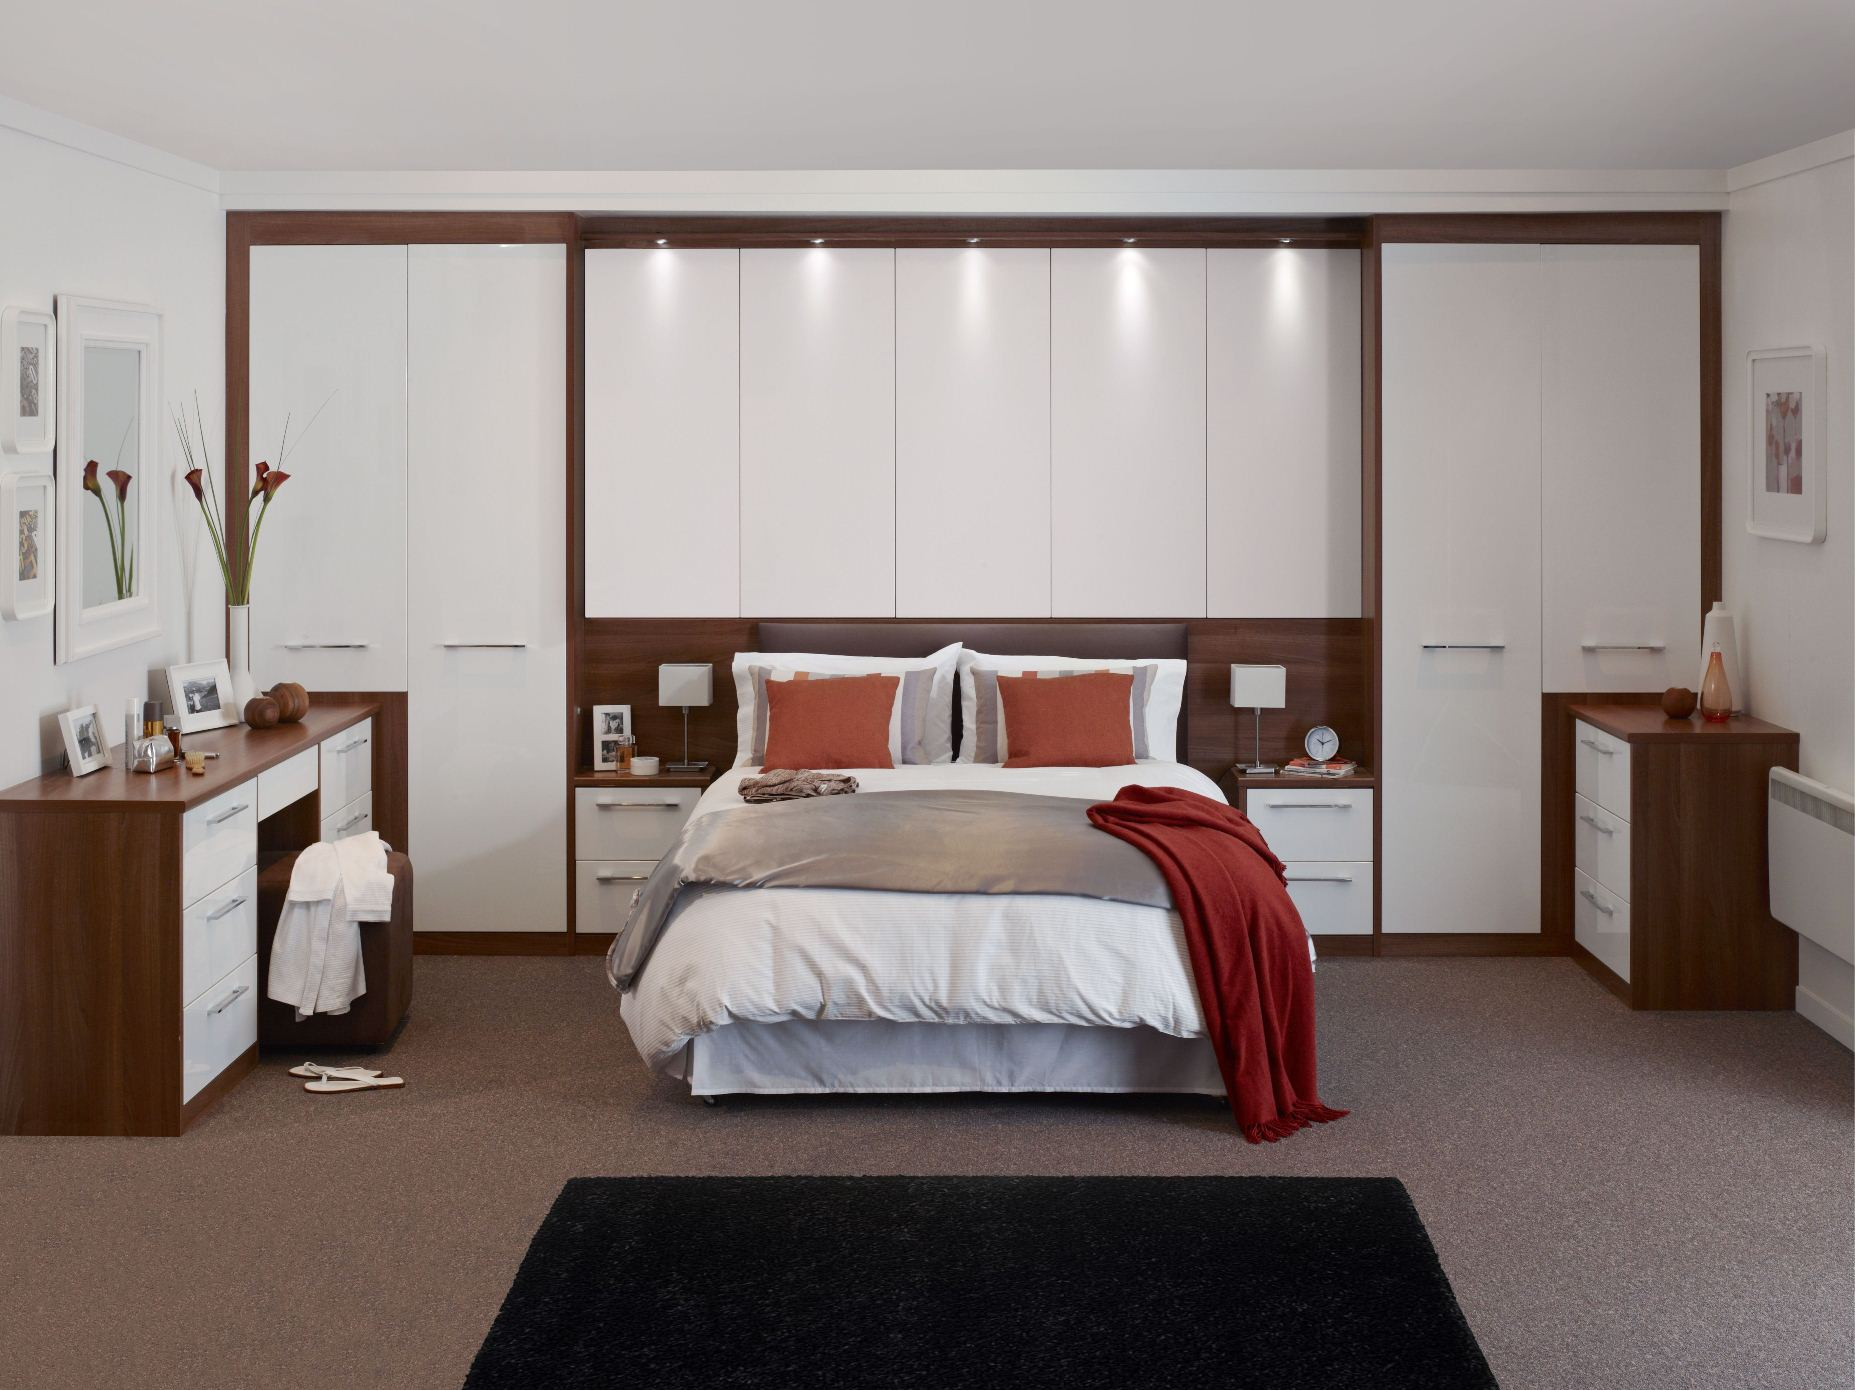 Bedroom Interiors Design Ideas, Fitted Bedroom Wardrobes ...